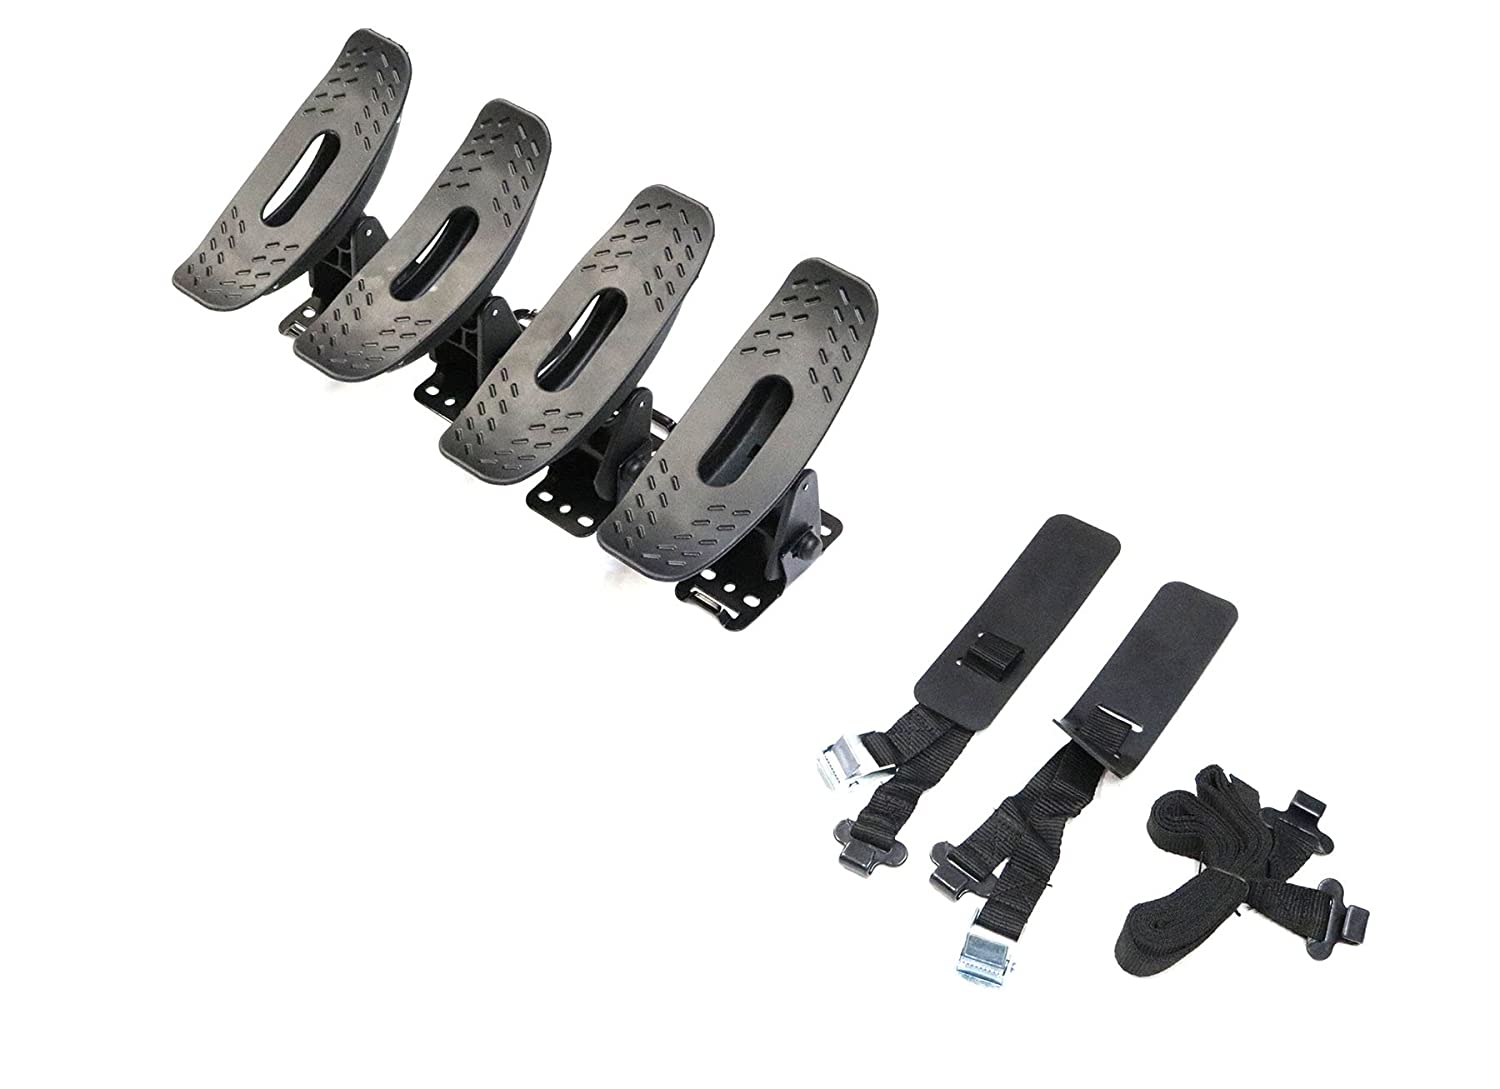 TMB Universal Dual Kayak Mounting System V1 fits most Vehicles Equipped with Cross Bars